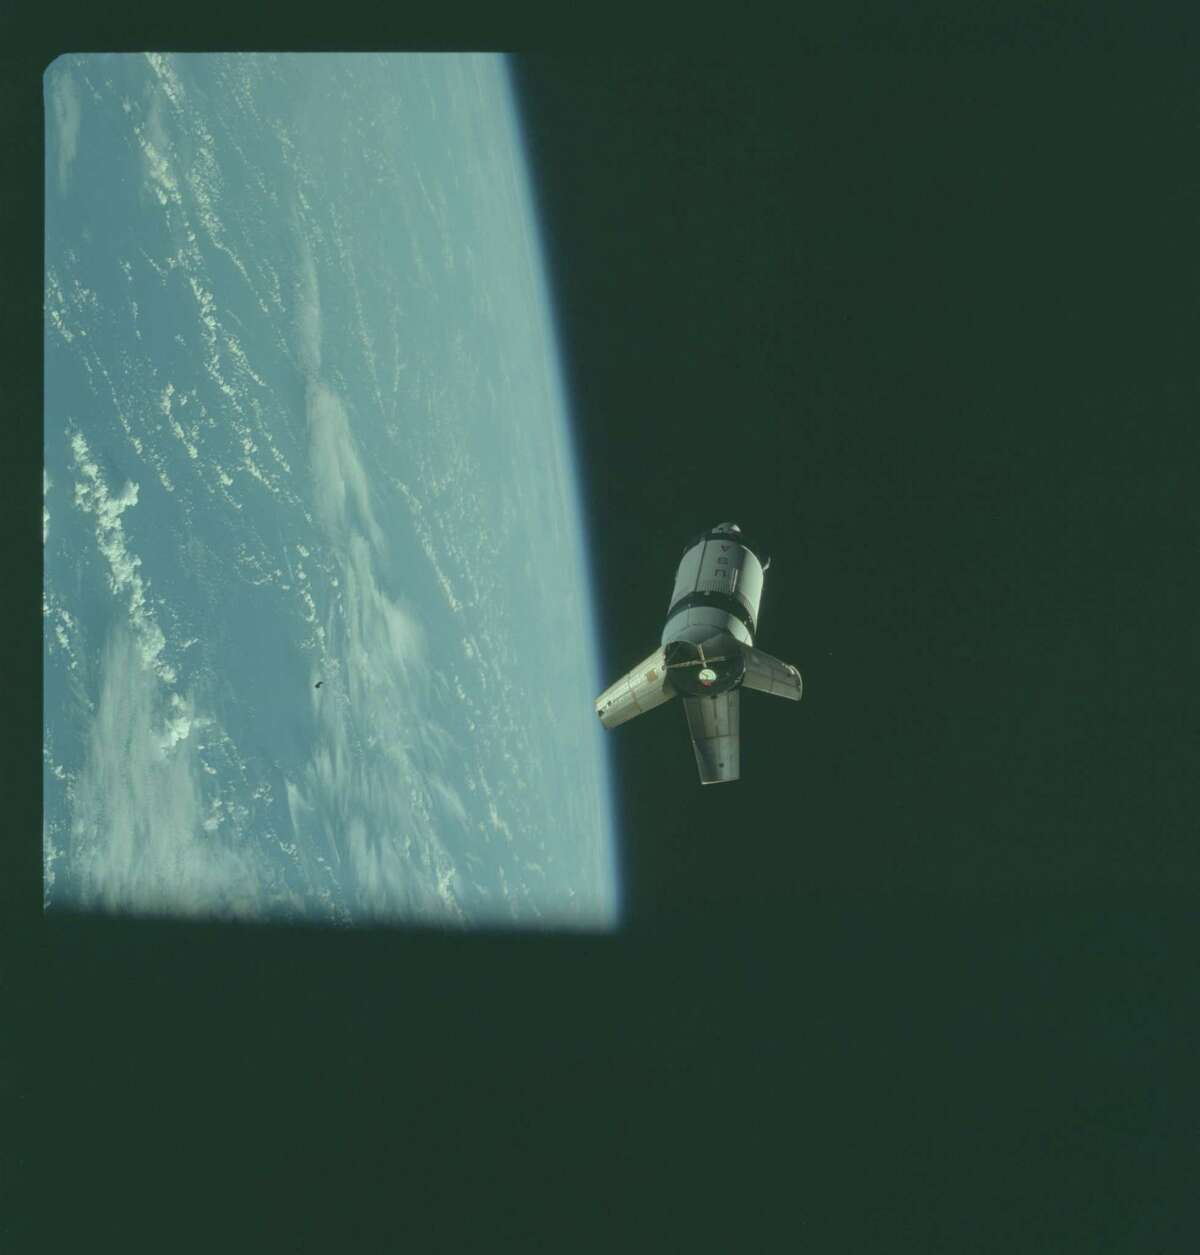 Apollo 7: (Wikipedia) First manned Earth orbital demonstration of Block II CSM, launched on Saturn IB. First live television publicly broadcast from a manned mission